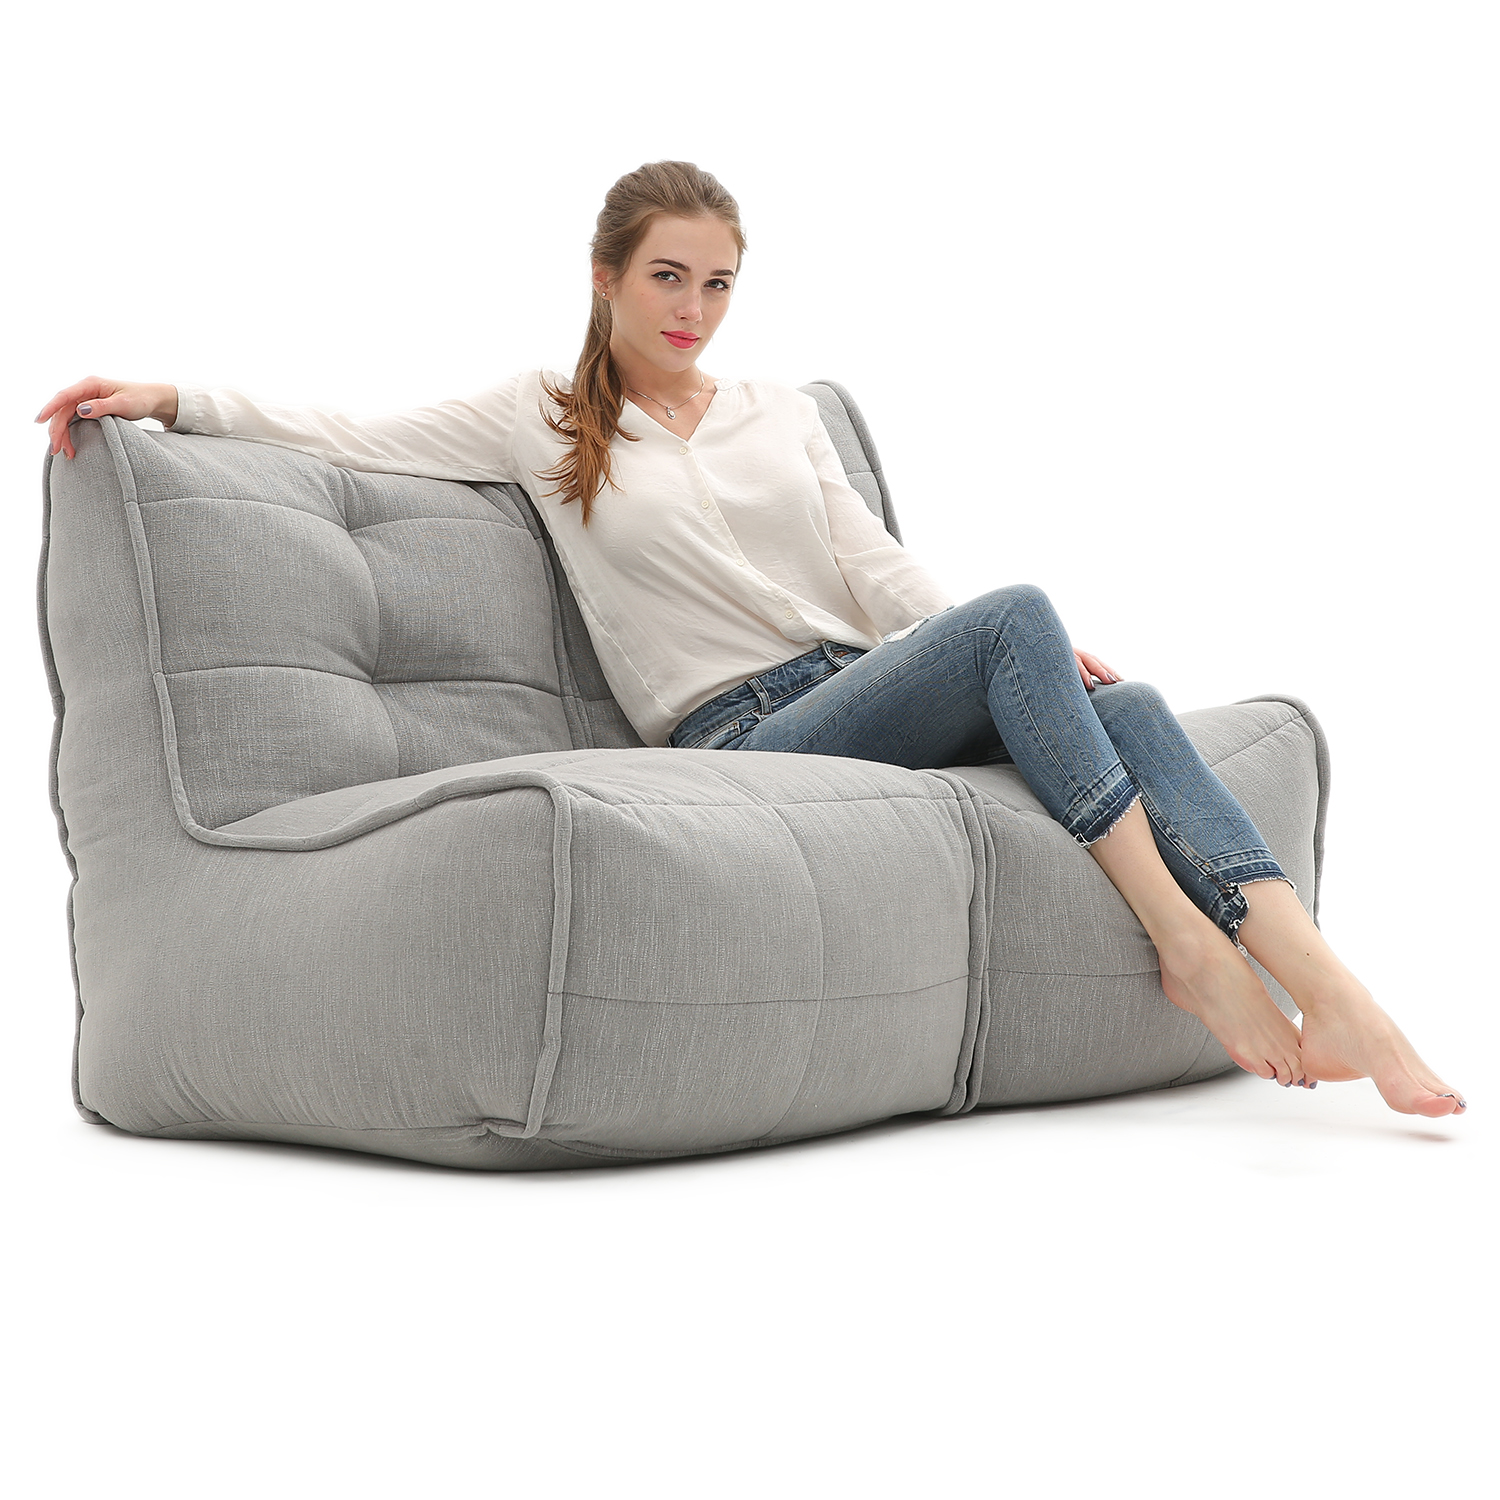 bean lazy coaster furniture chairs corner life upholstered couches value city bag pin couch